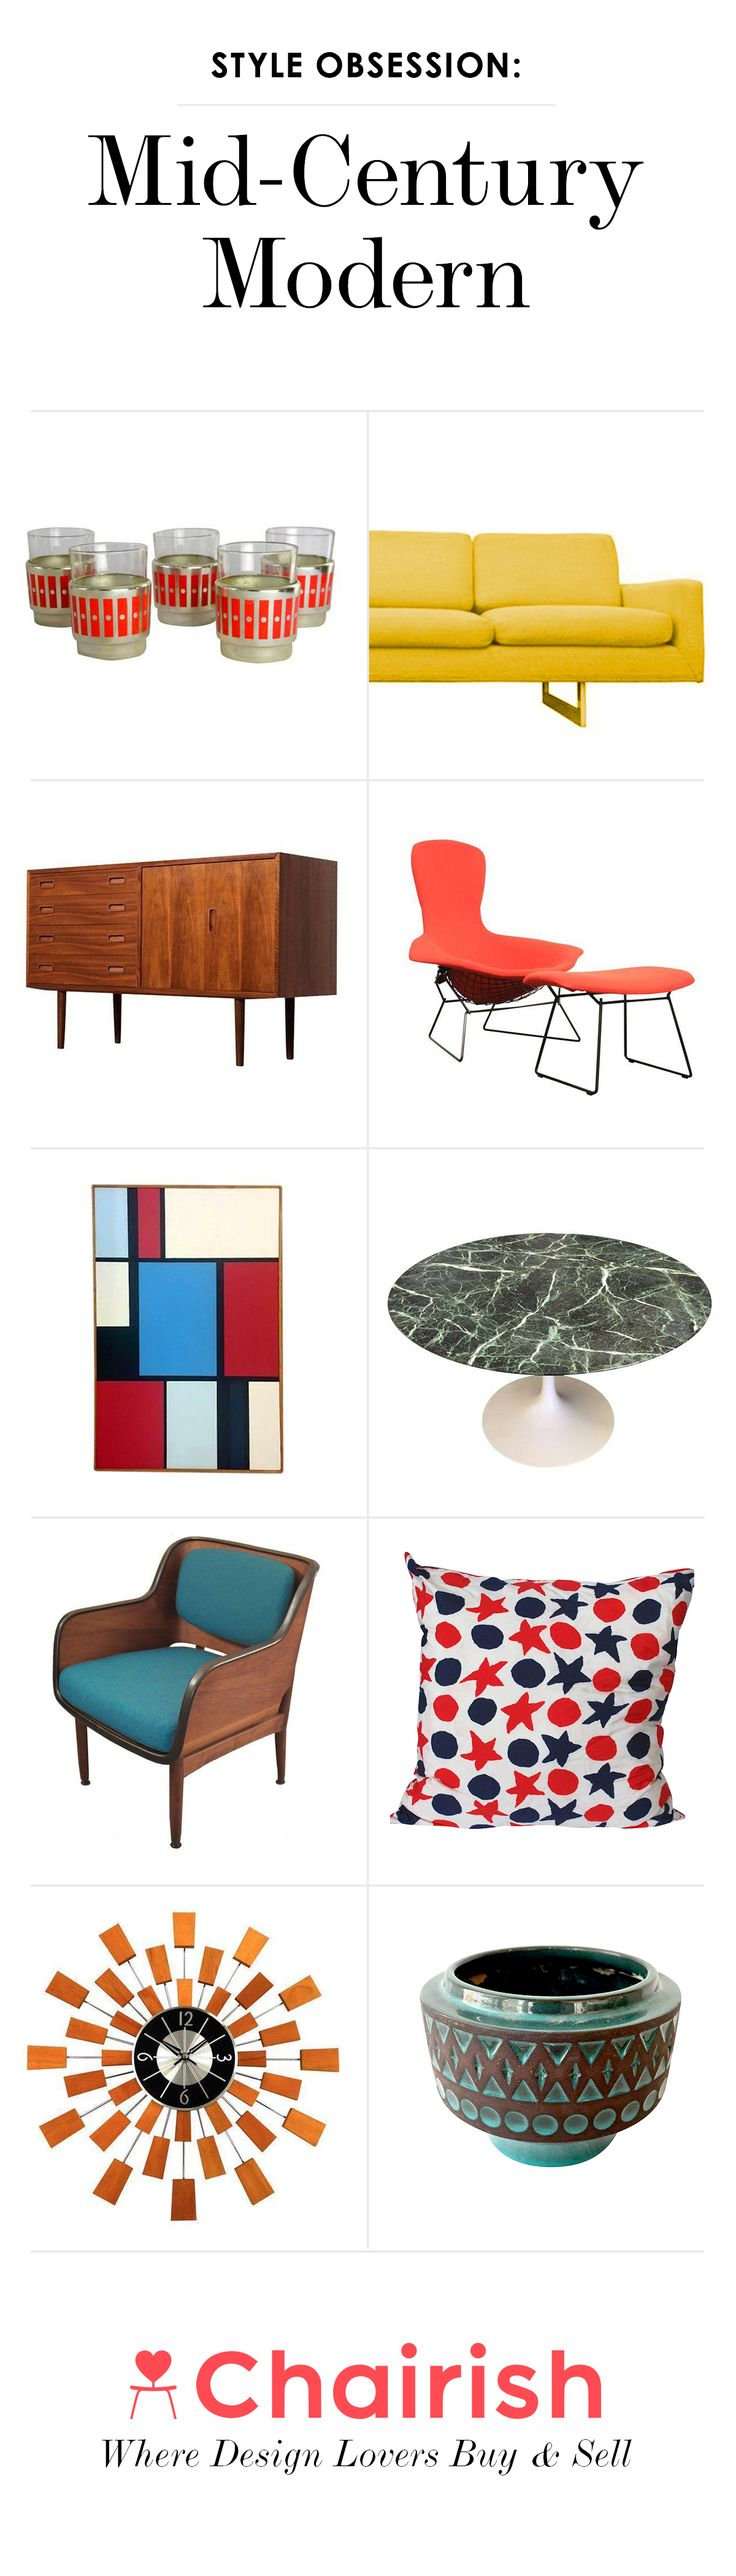 17 best images about mid century modern on pinterest for Iconic mid century modern furniture